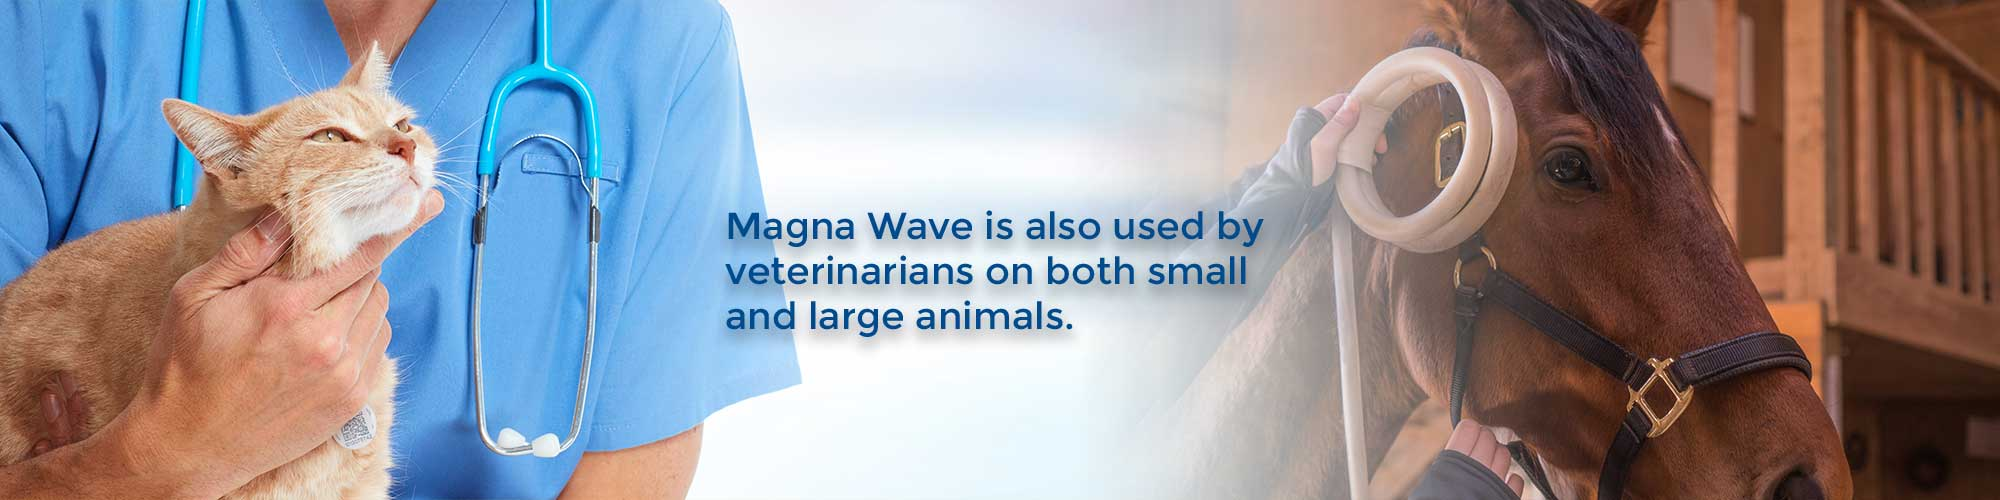 Magna Wave is also used by veterinarians on both small and large animals.